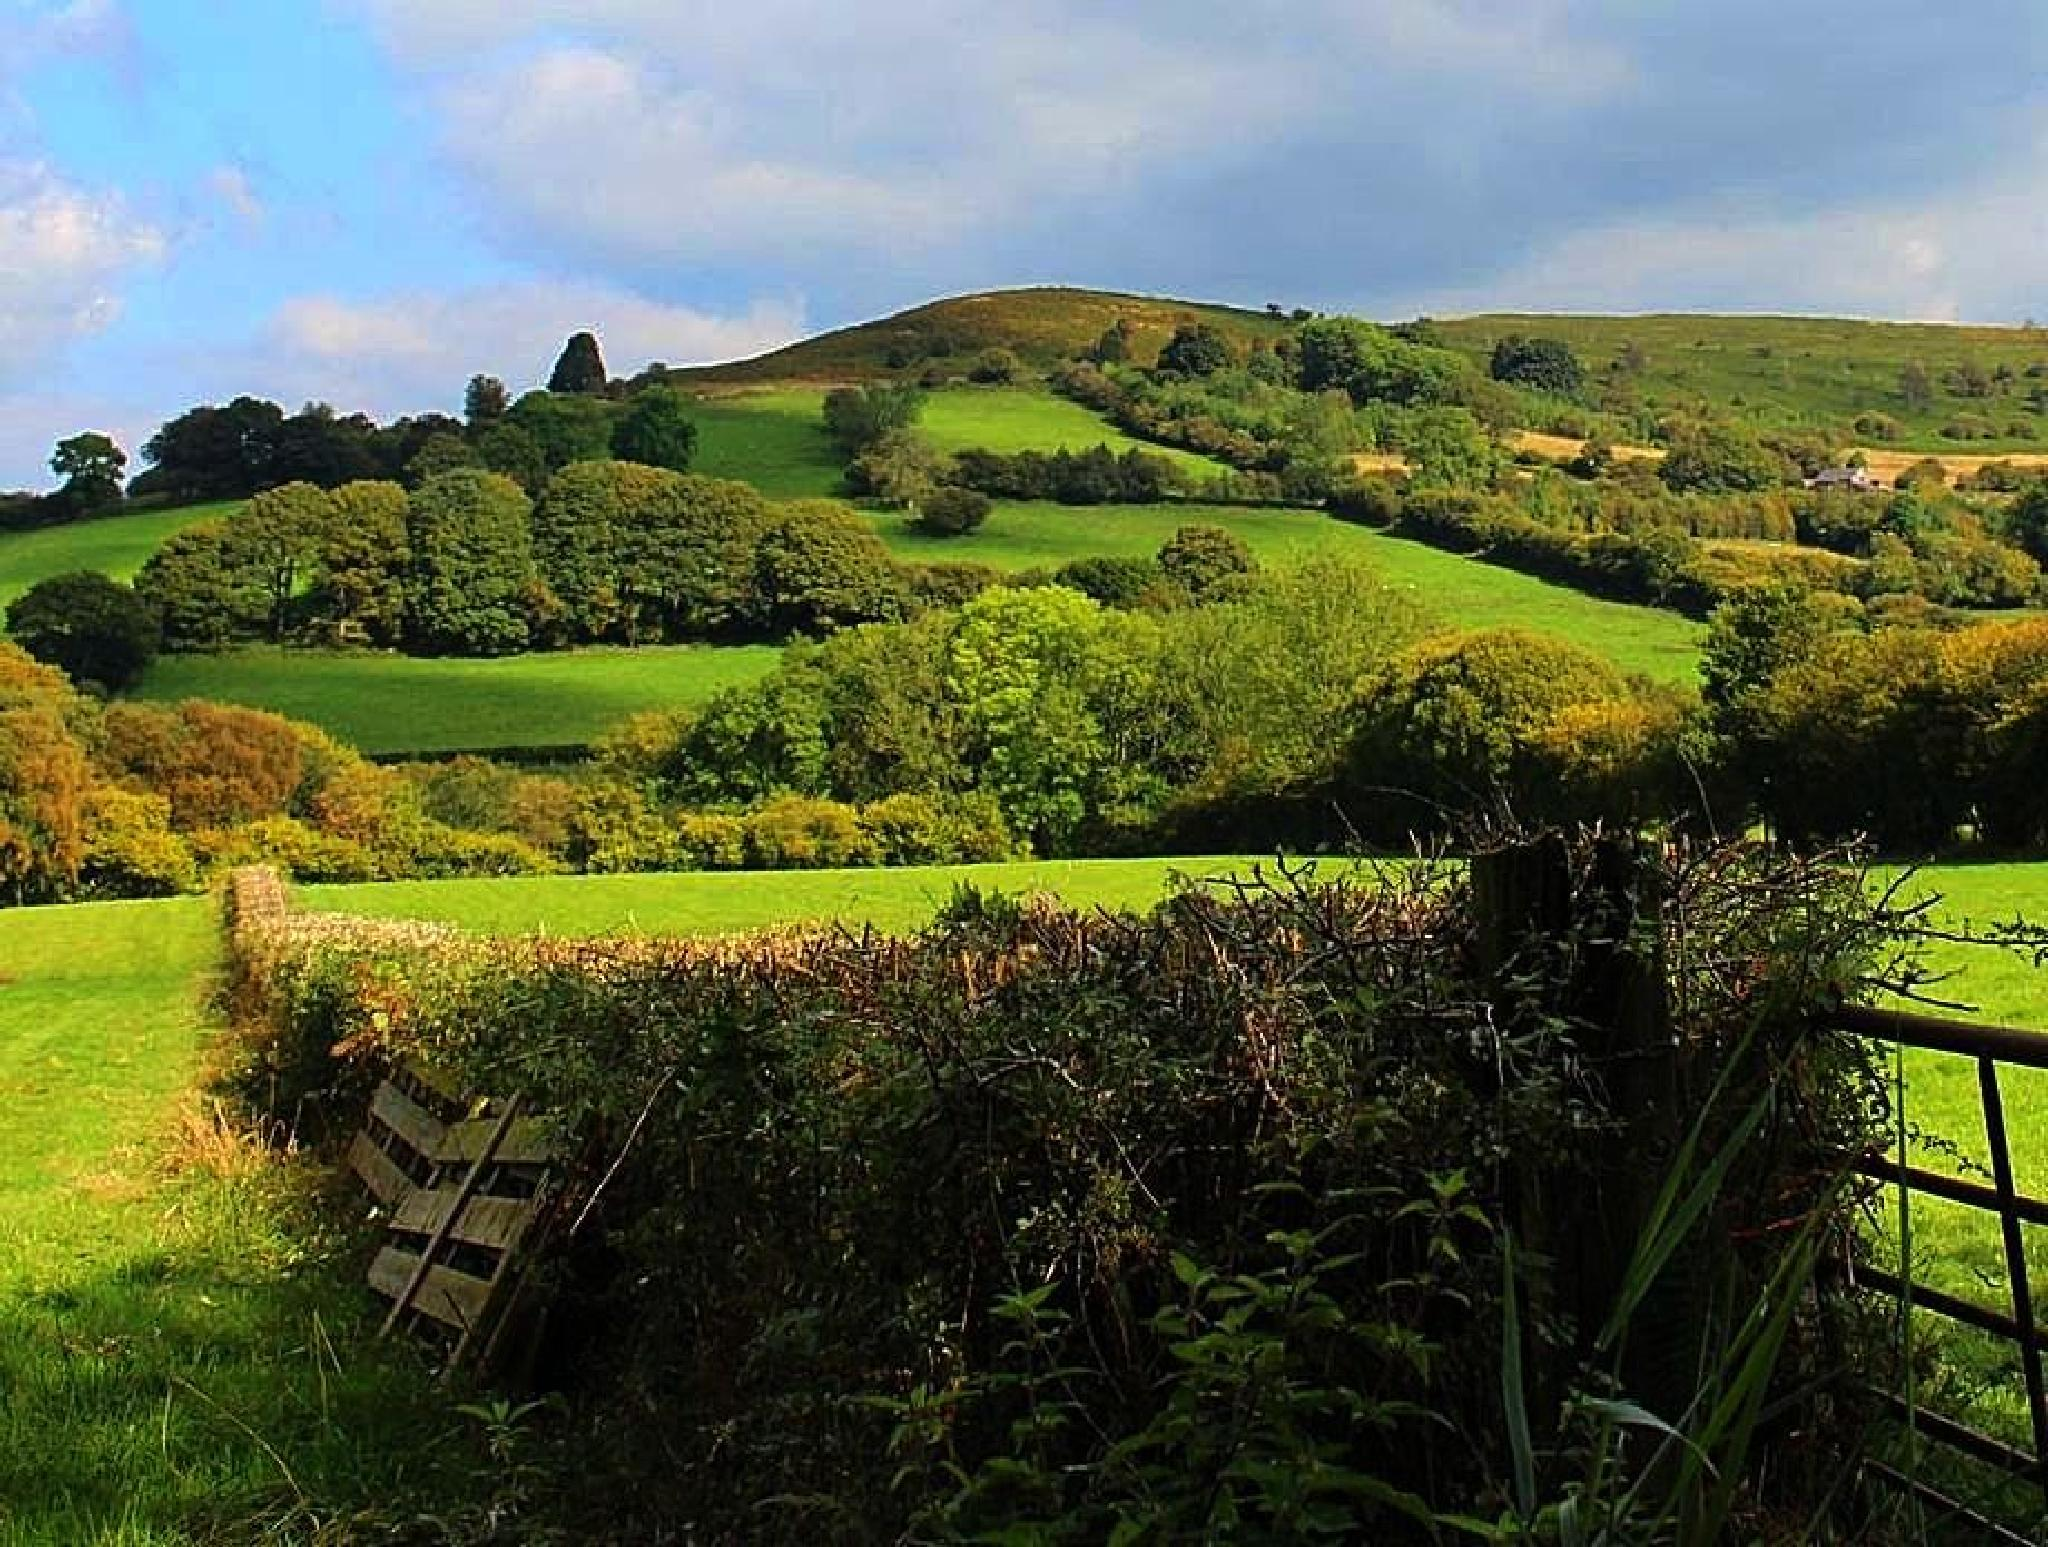 Near Crickhowell in Monmouthshire, Wales by ralph.cook2